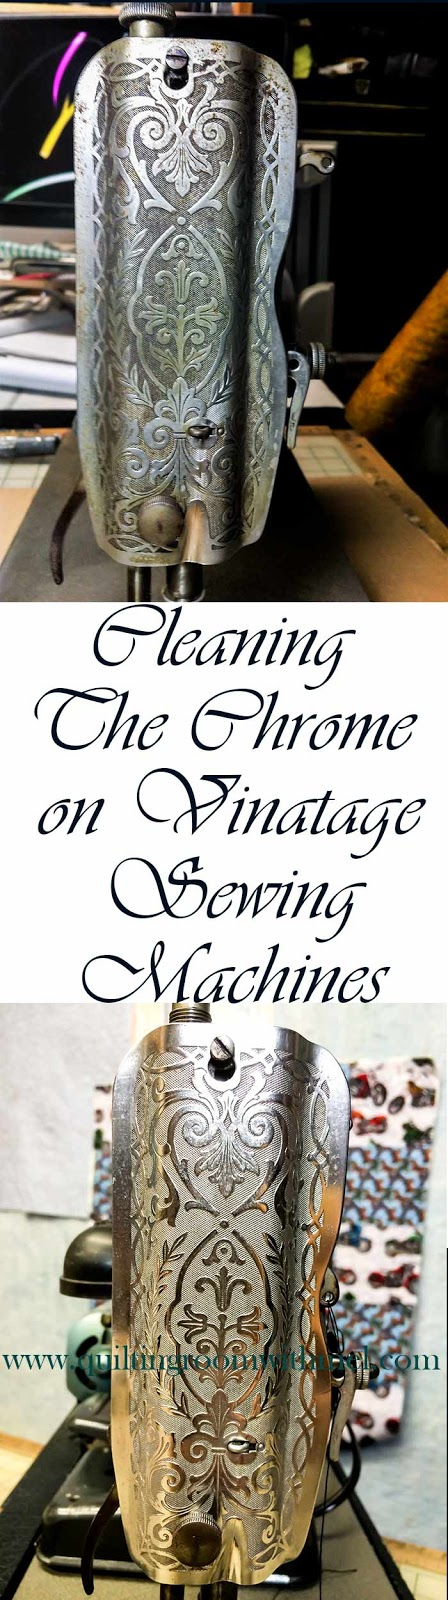 cleaning chrome on vintage sewing machines